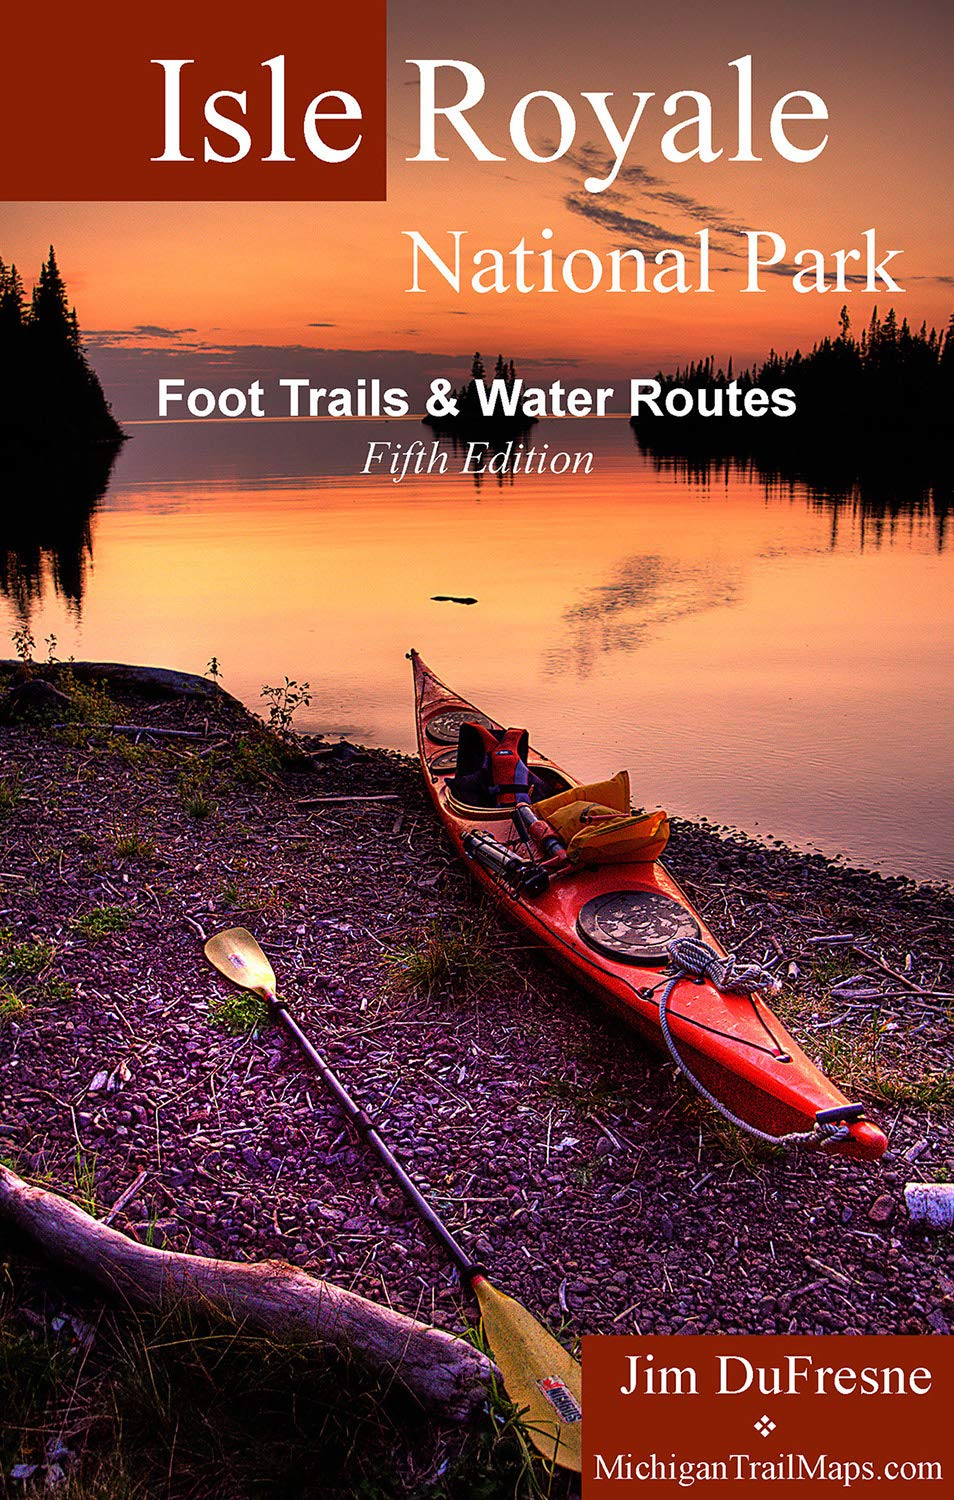 Isle Royale National Park Foot Trails & Water Routes